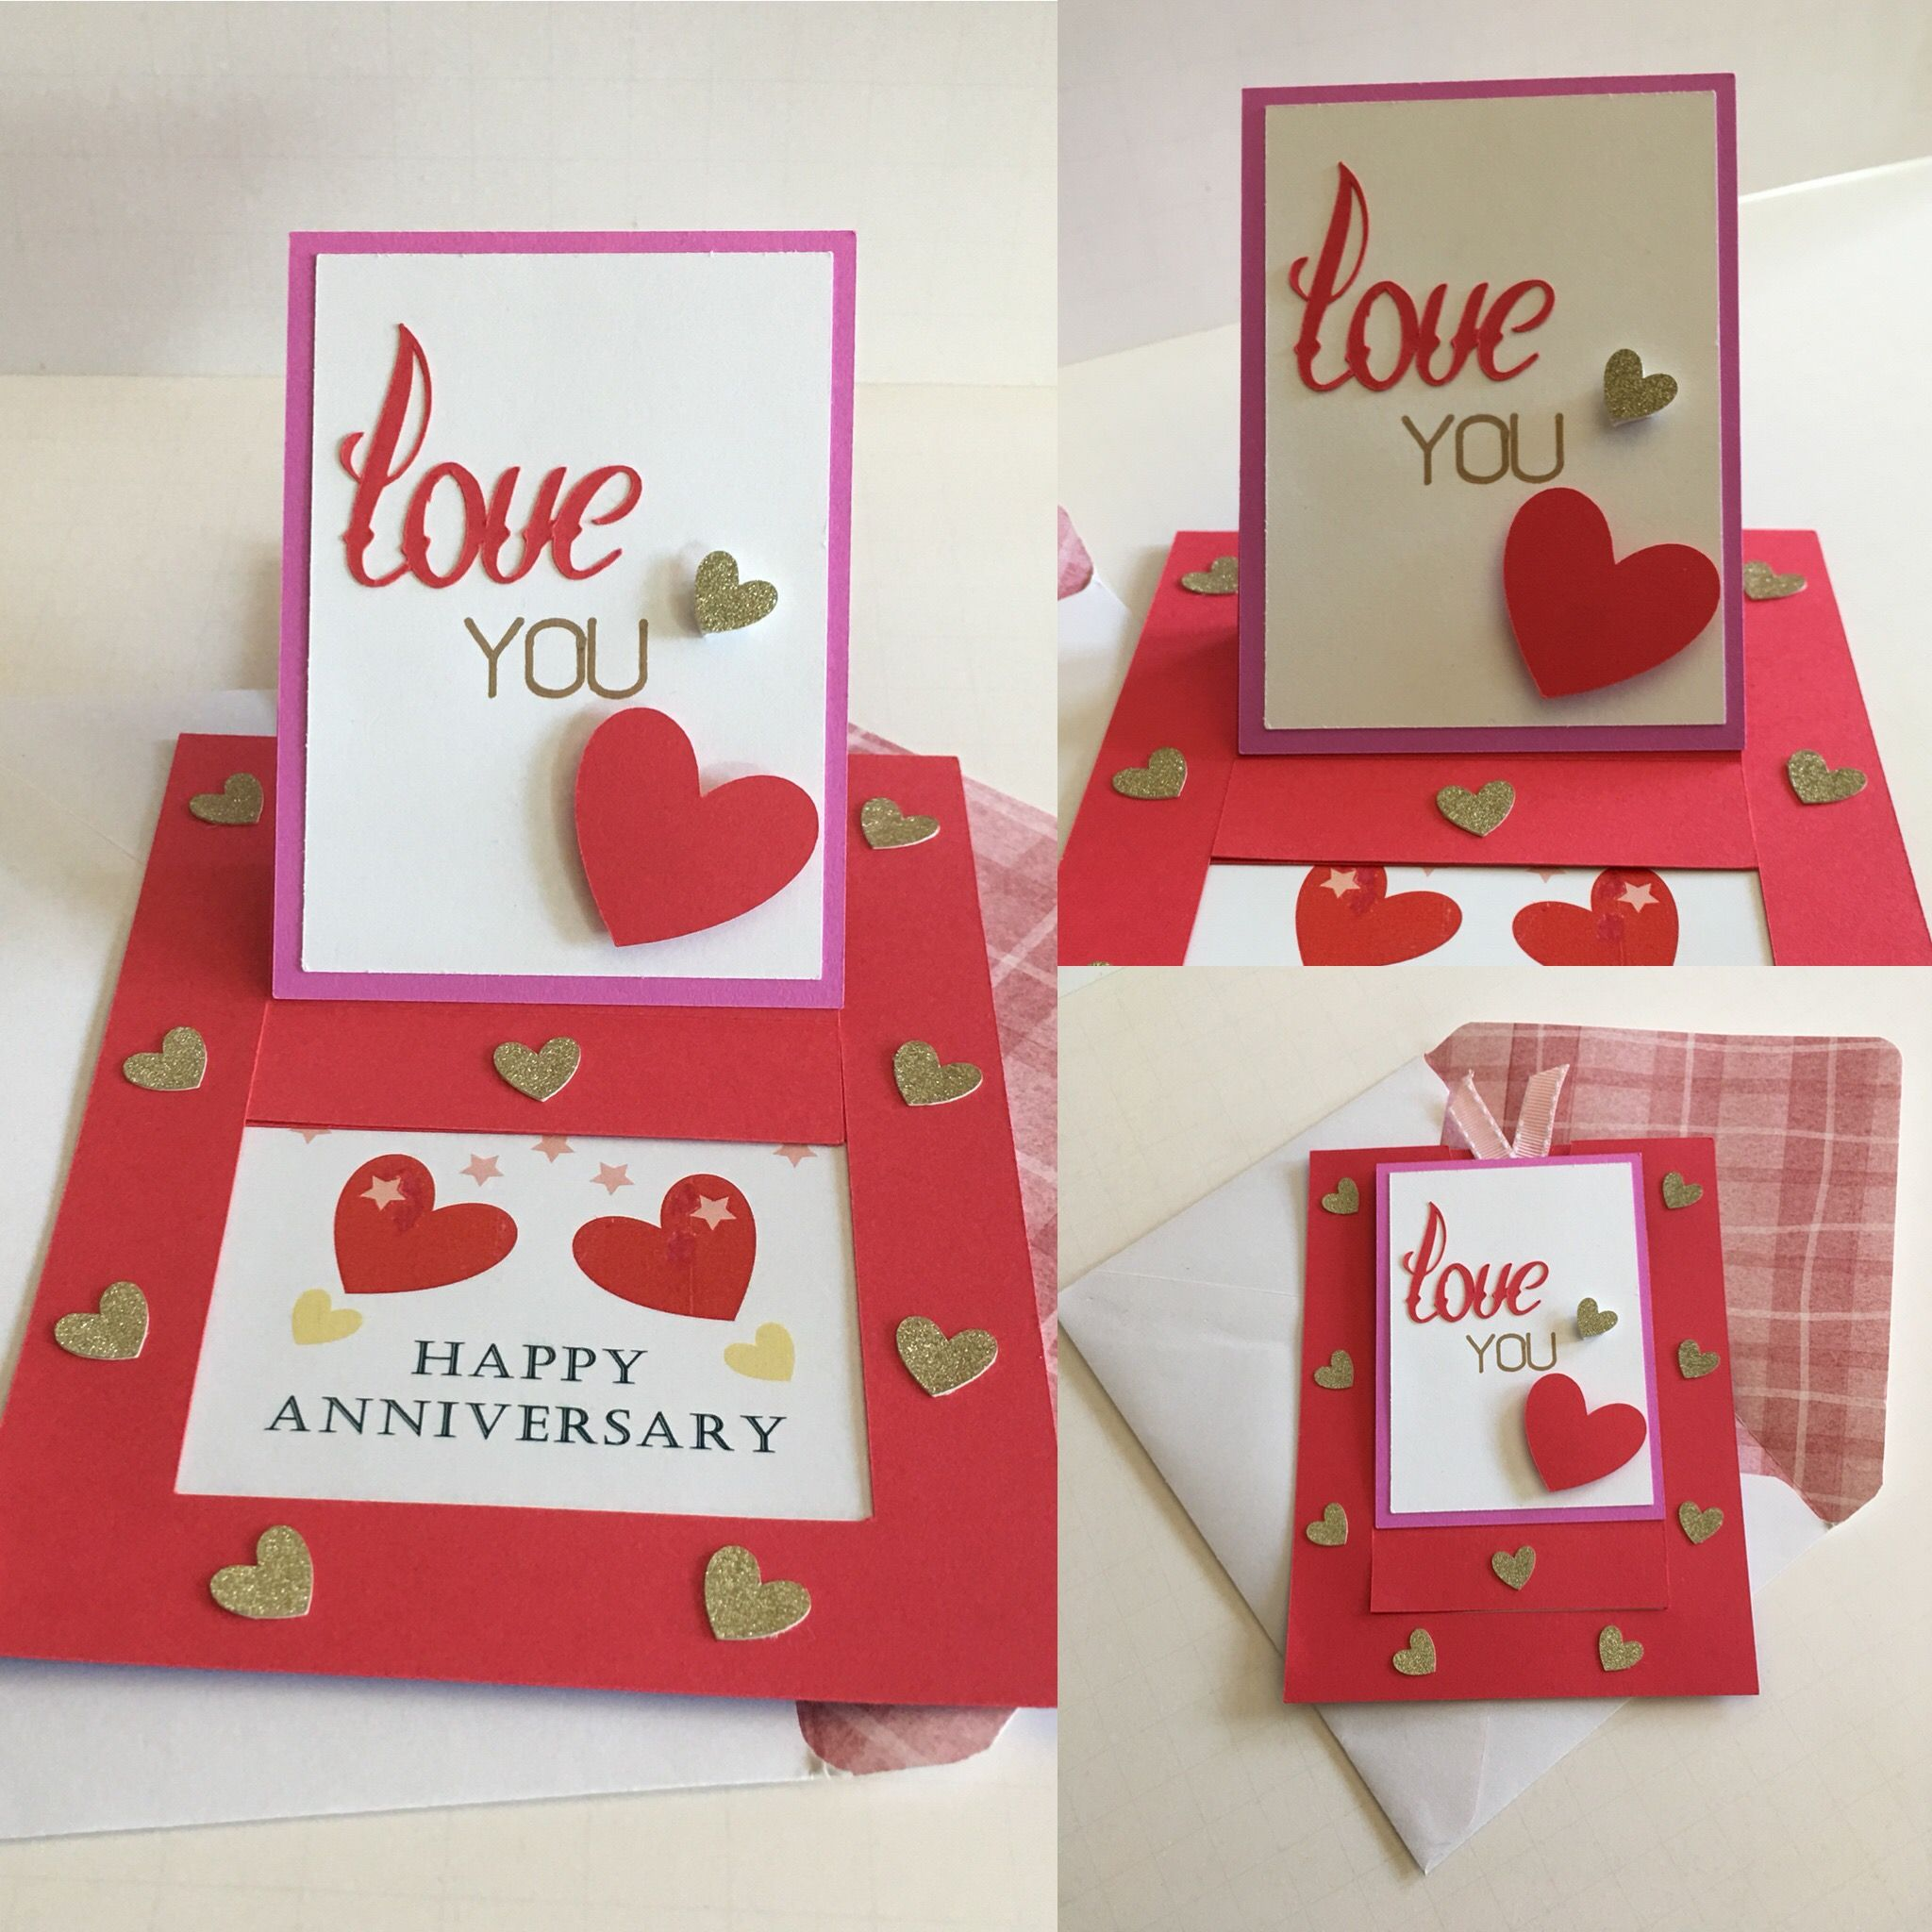 Love You Hearts Slide Up Special Message Anniversary Card For